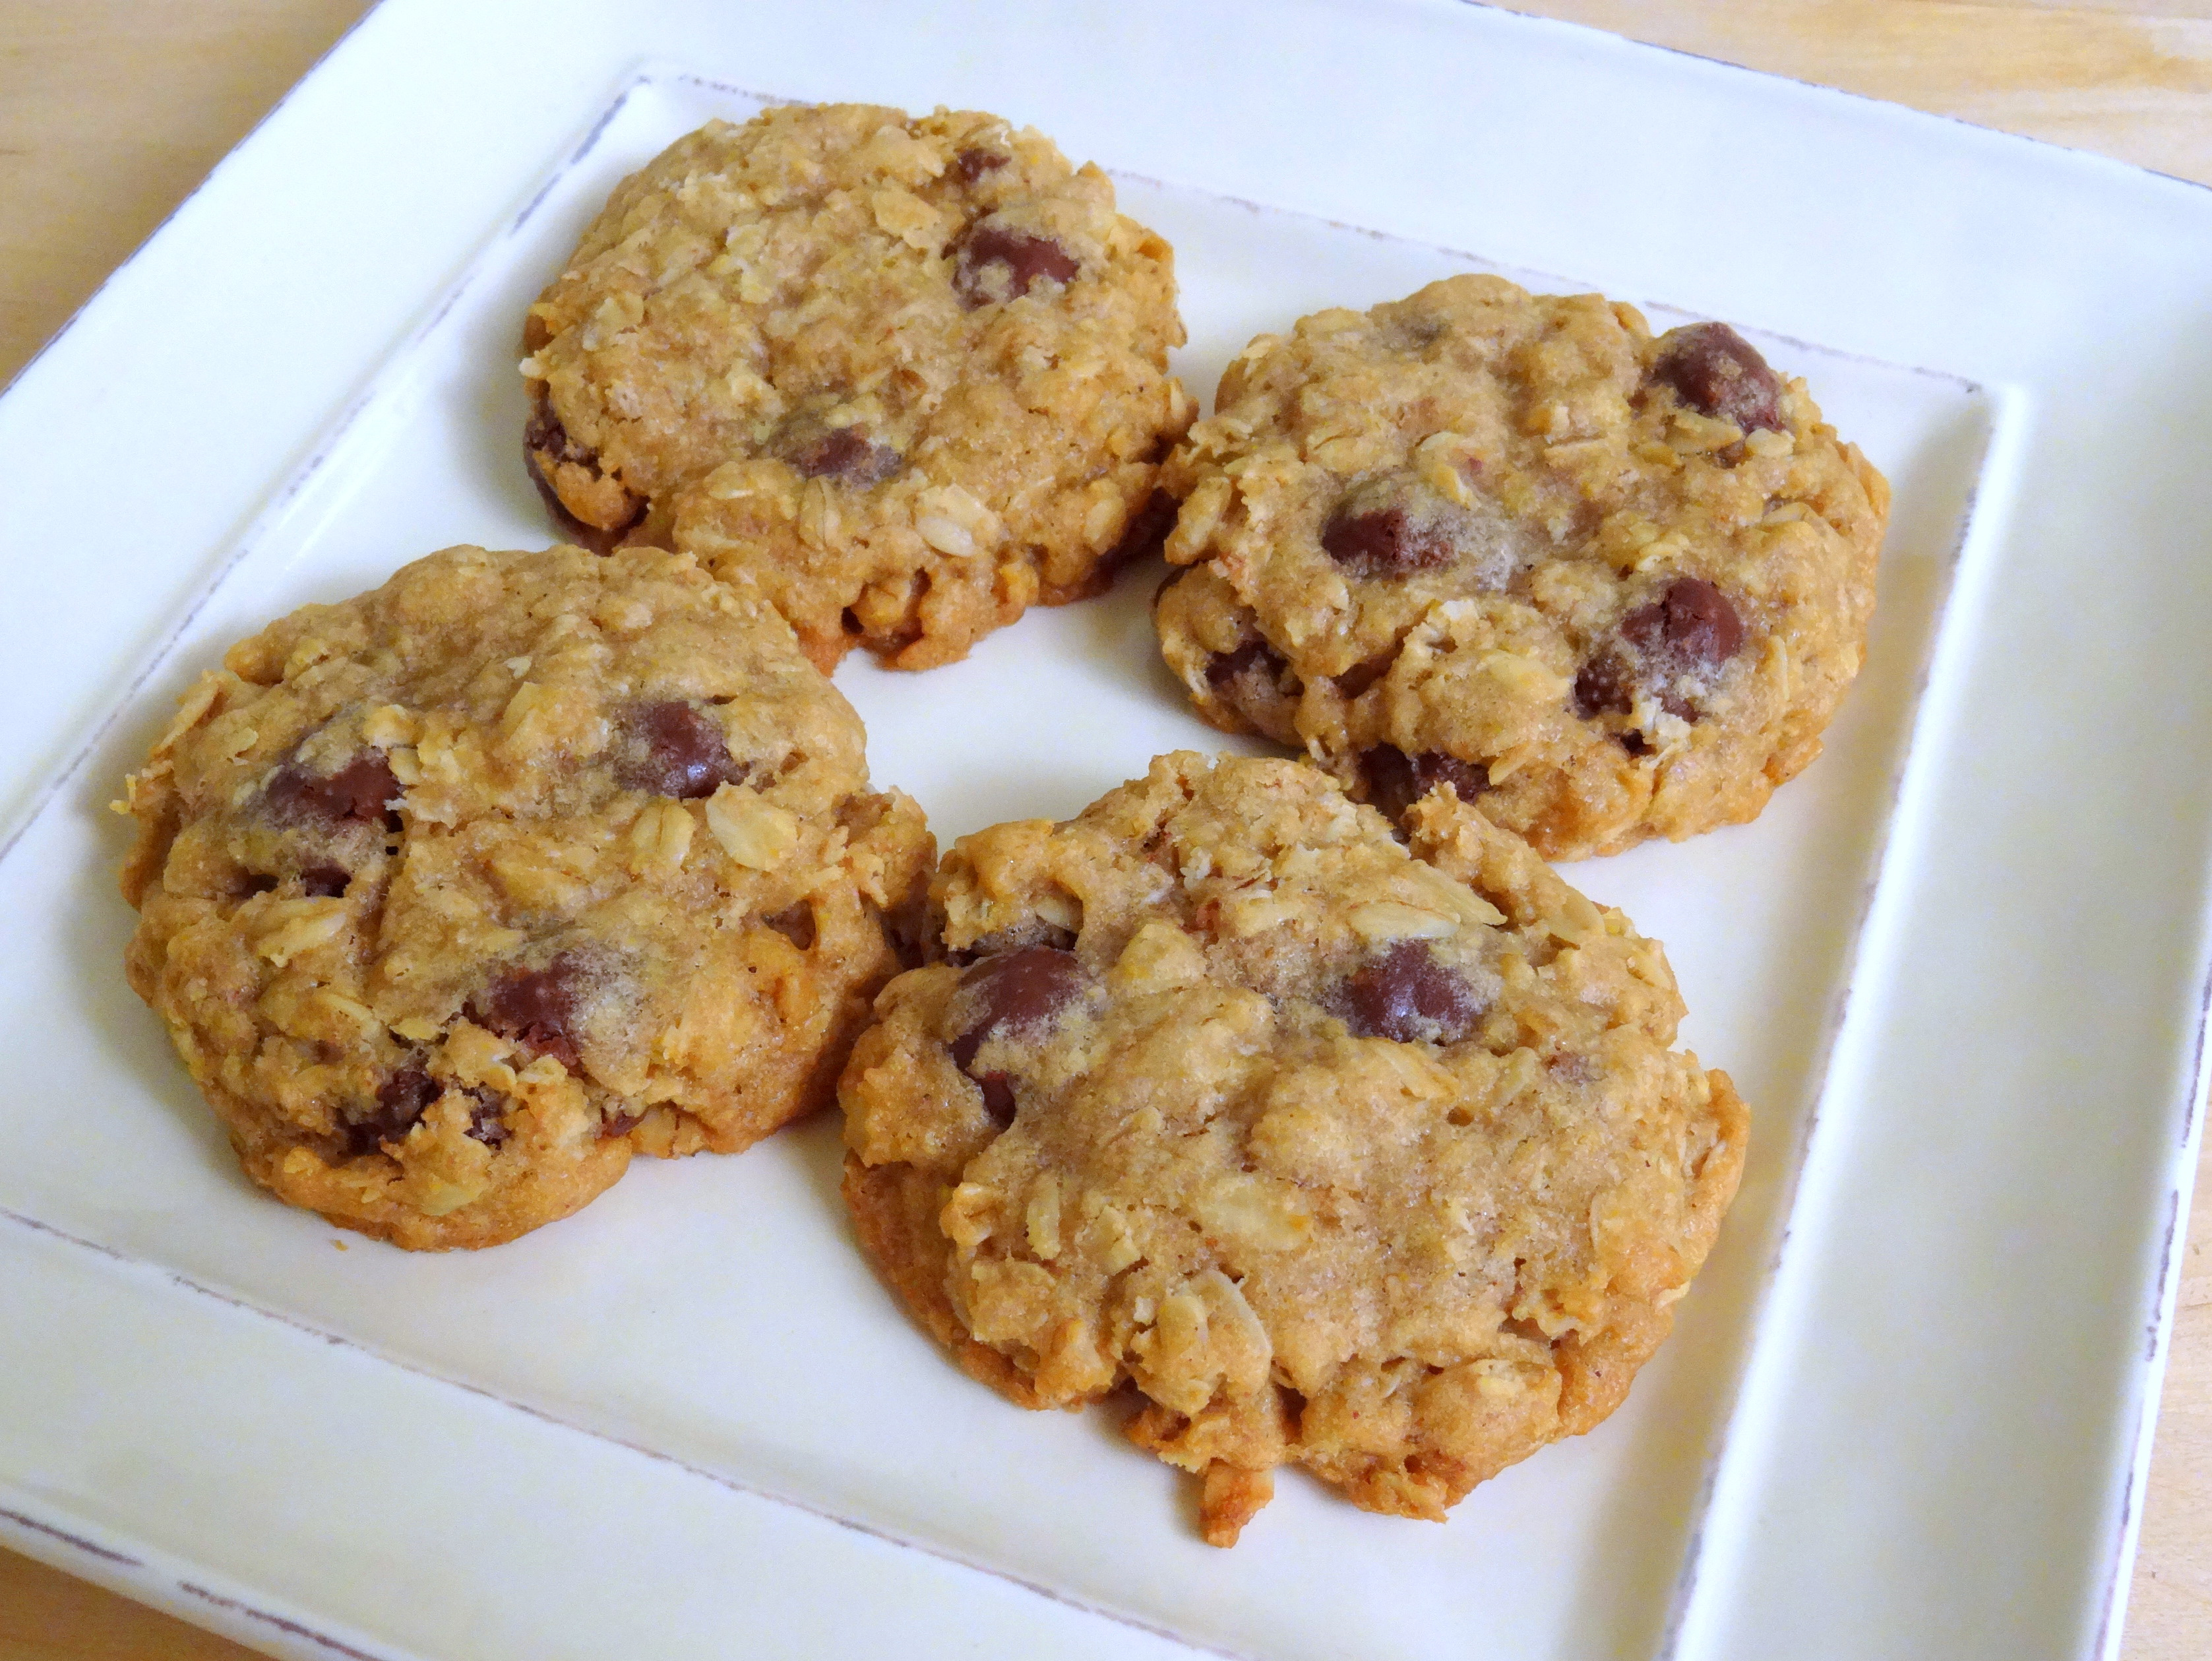 Brown Butter Oatmeal Cookies with Chocolate-Covered Raisins